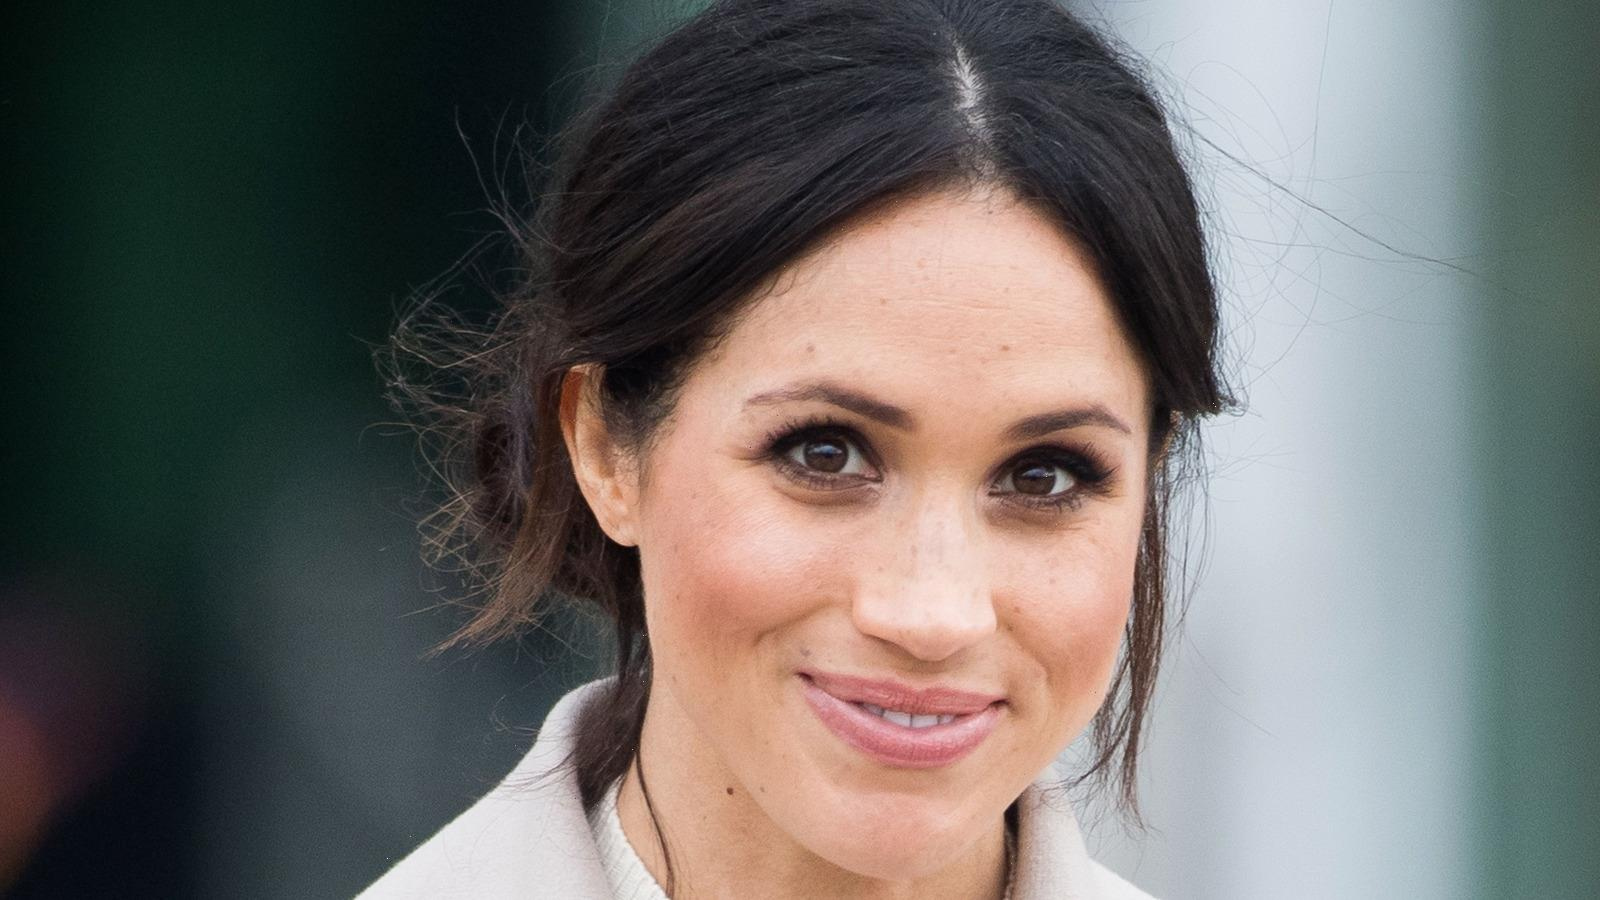 The Hair Texture Spray That Meghan Markle Swore By On Suits